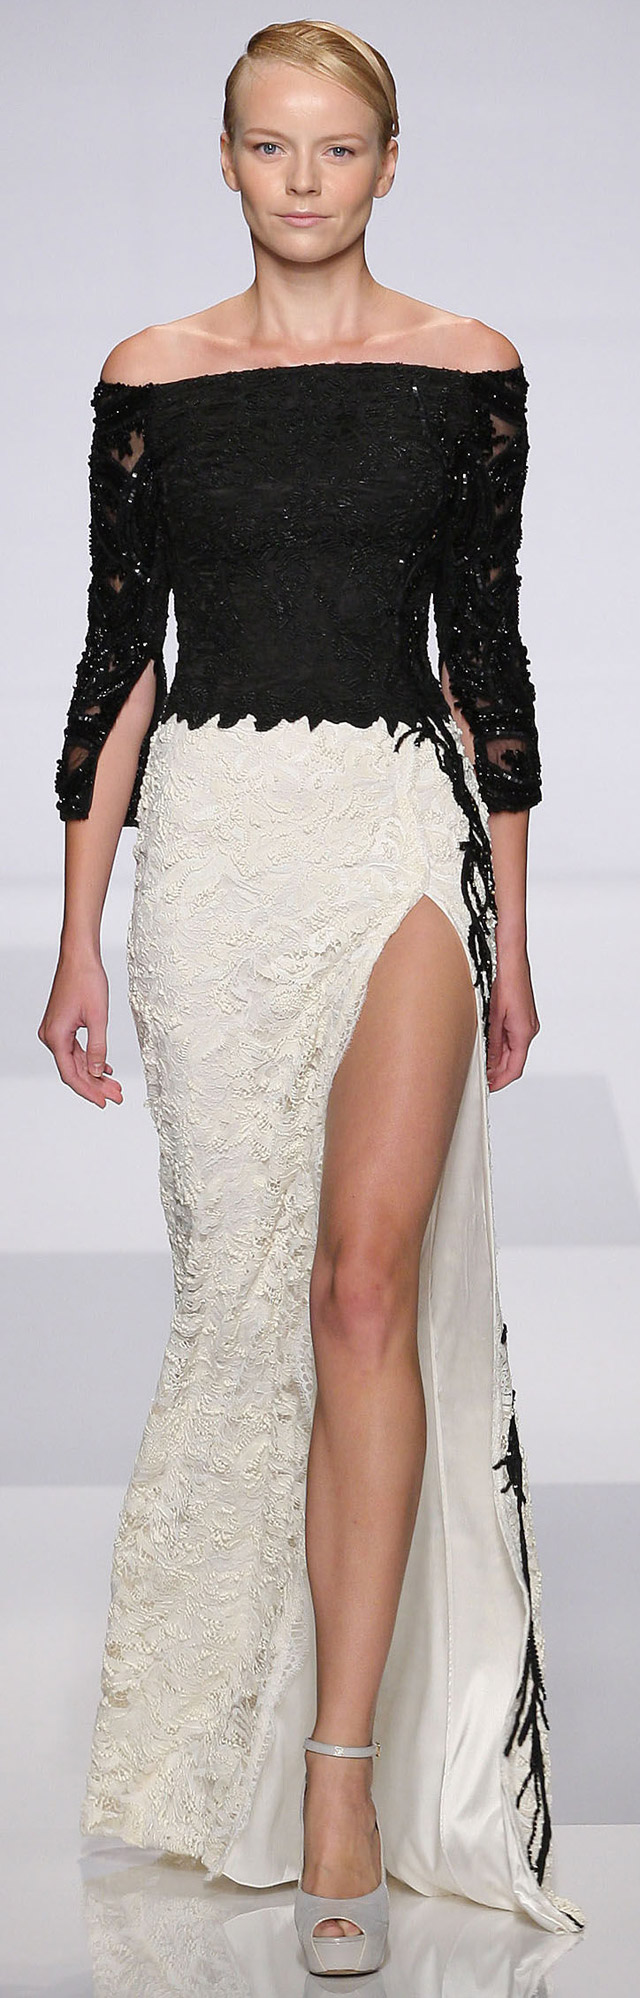 TONY WARD  COUTURE  FALL-WINTER 2013-2014 (11)